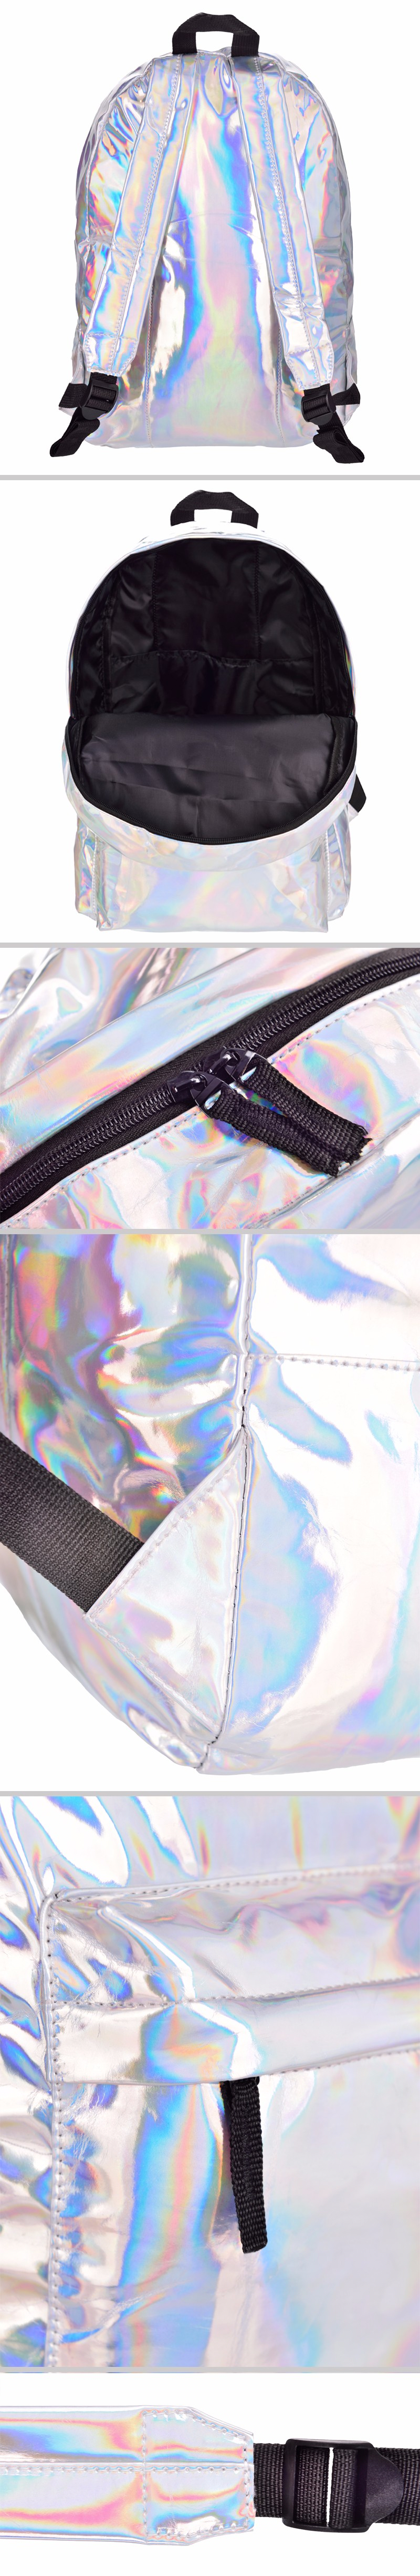 39457 holographic smooth 006